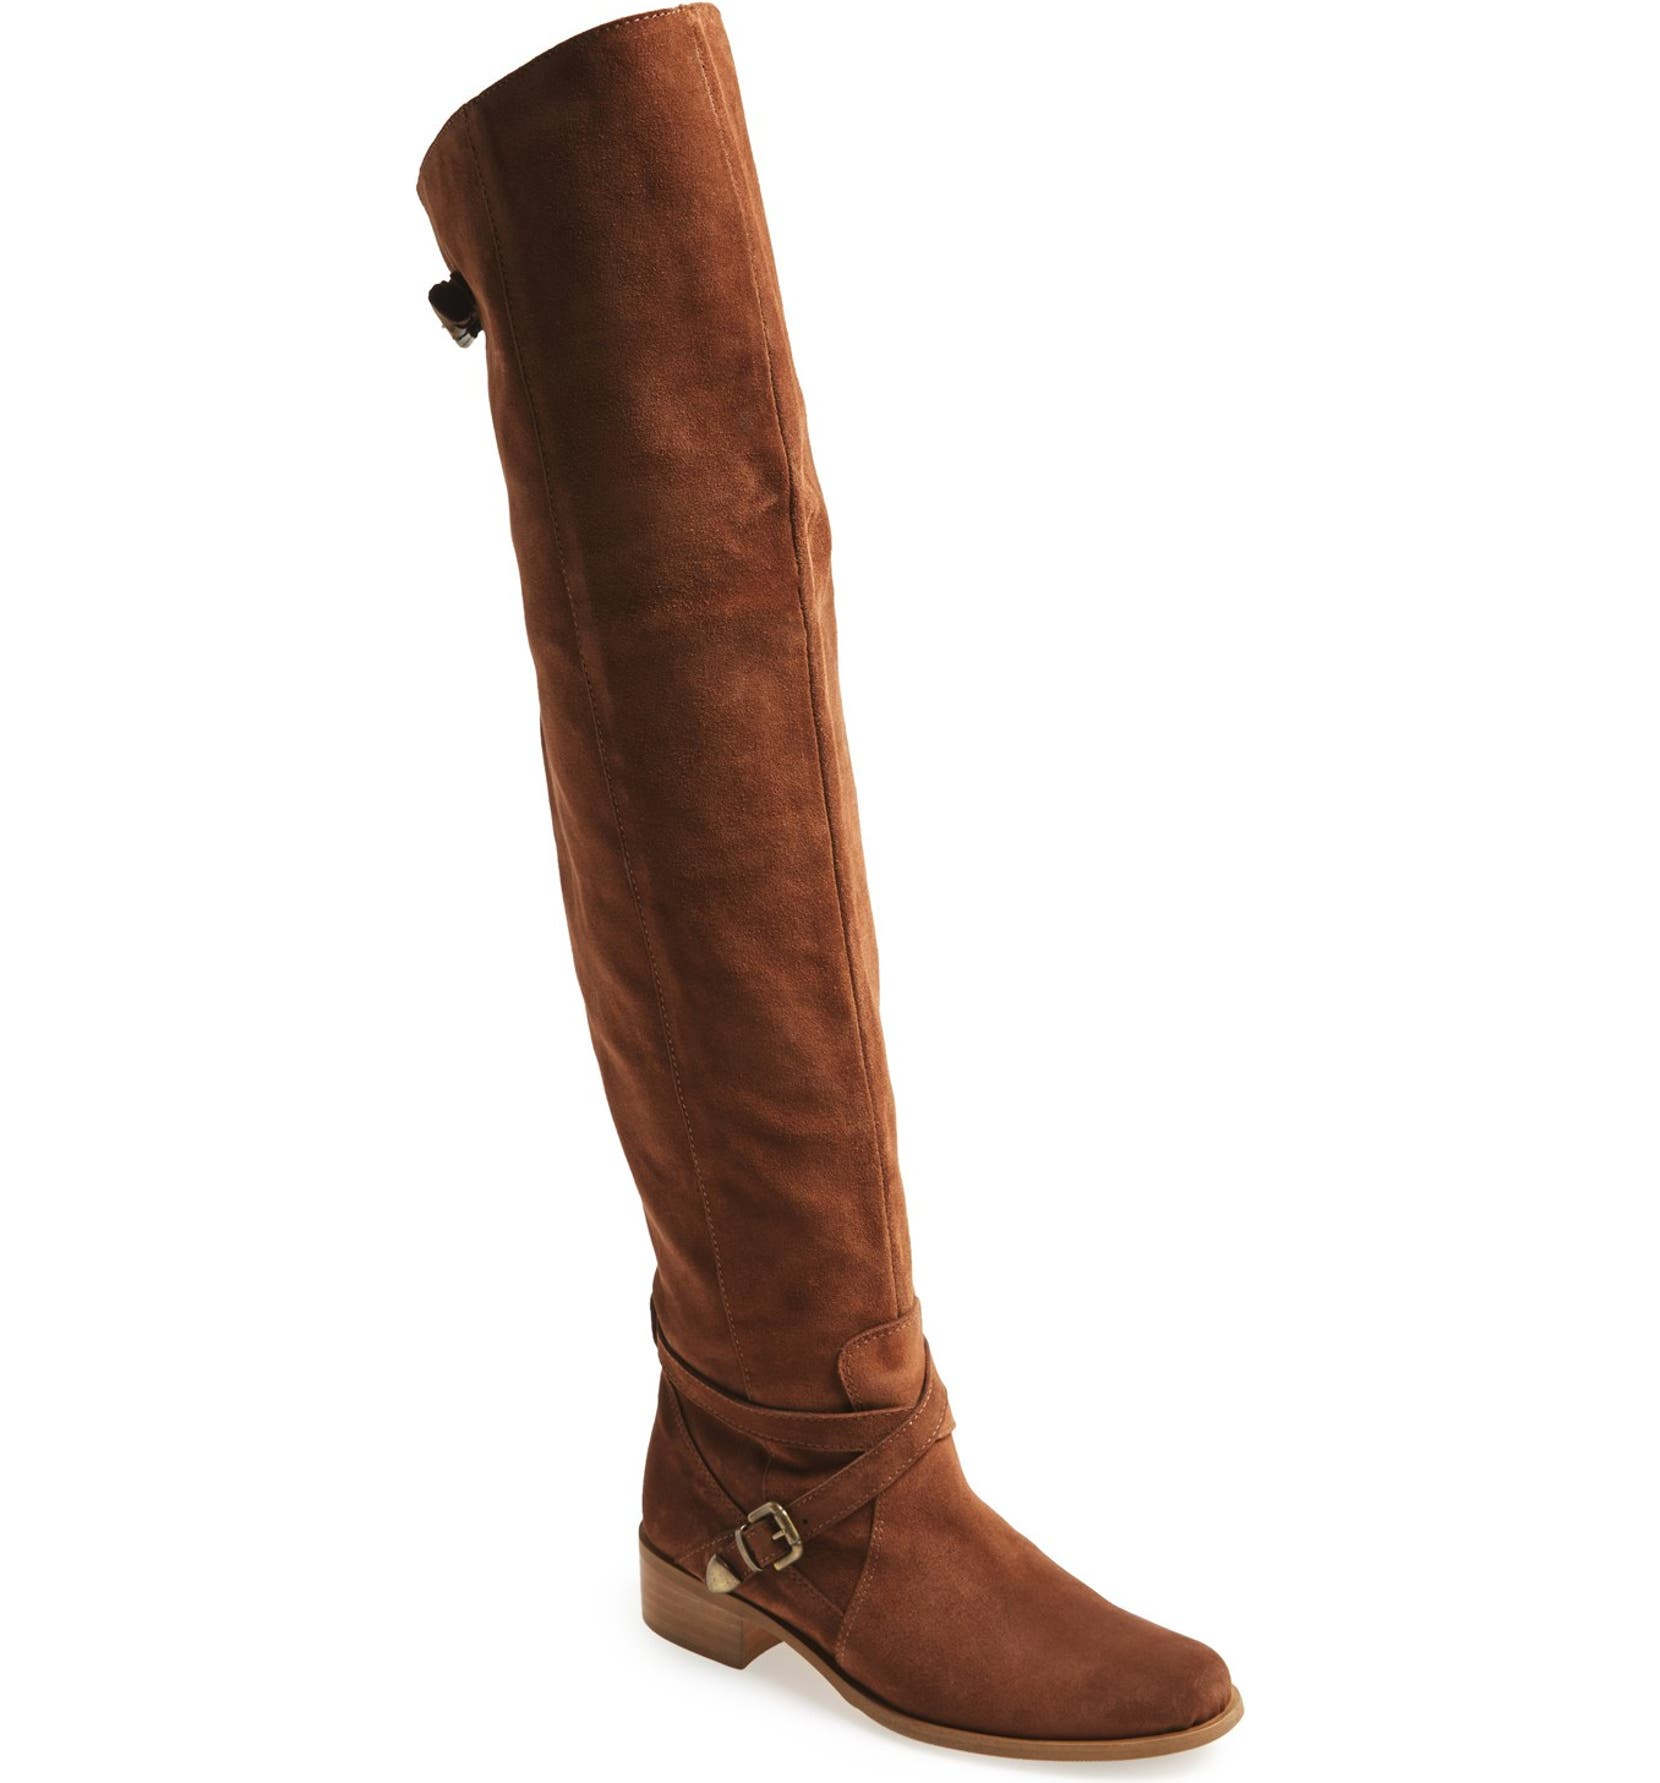 0644d8c8e051ca  Gianna  Over the Knee Boot